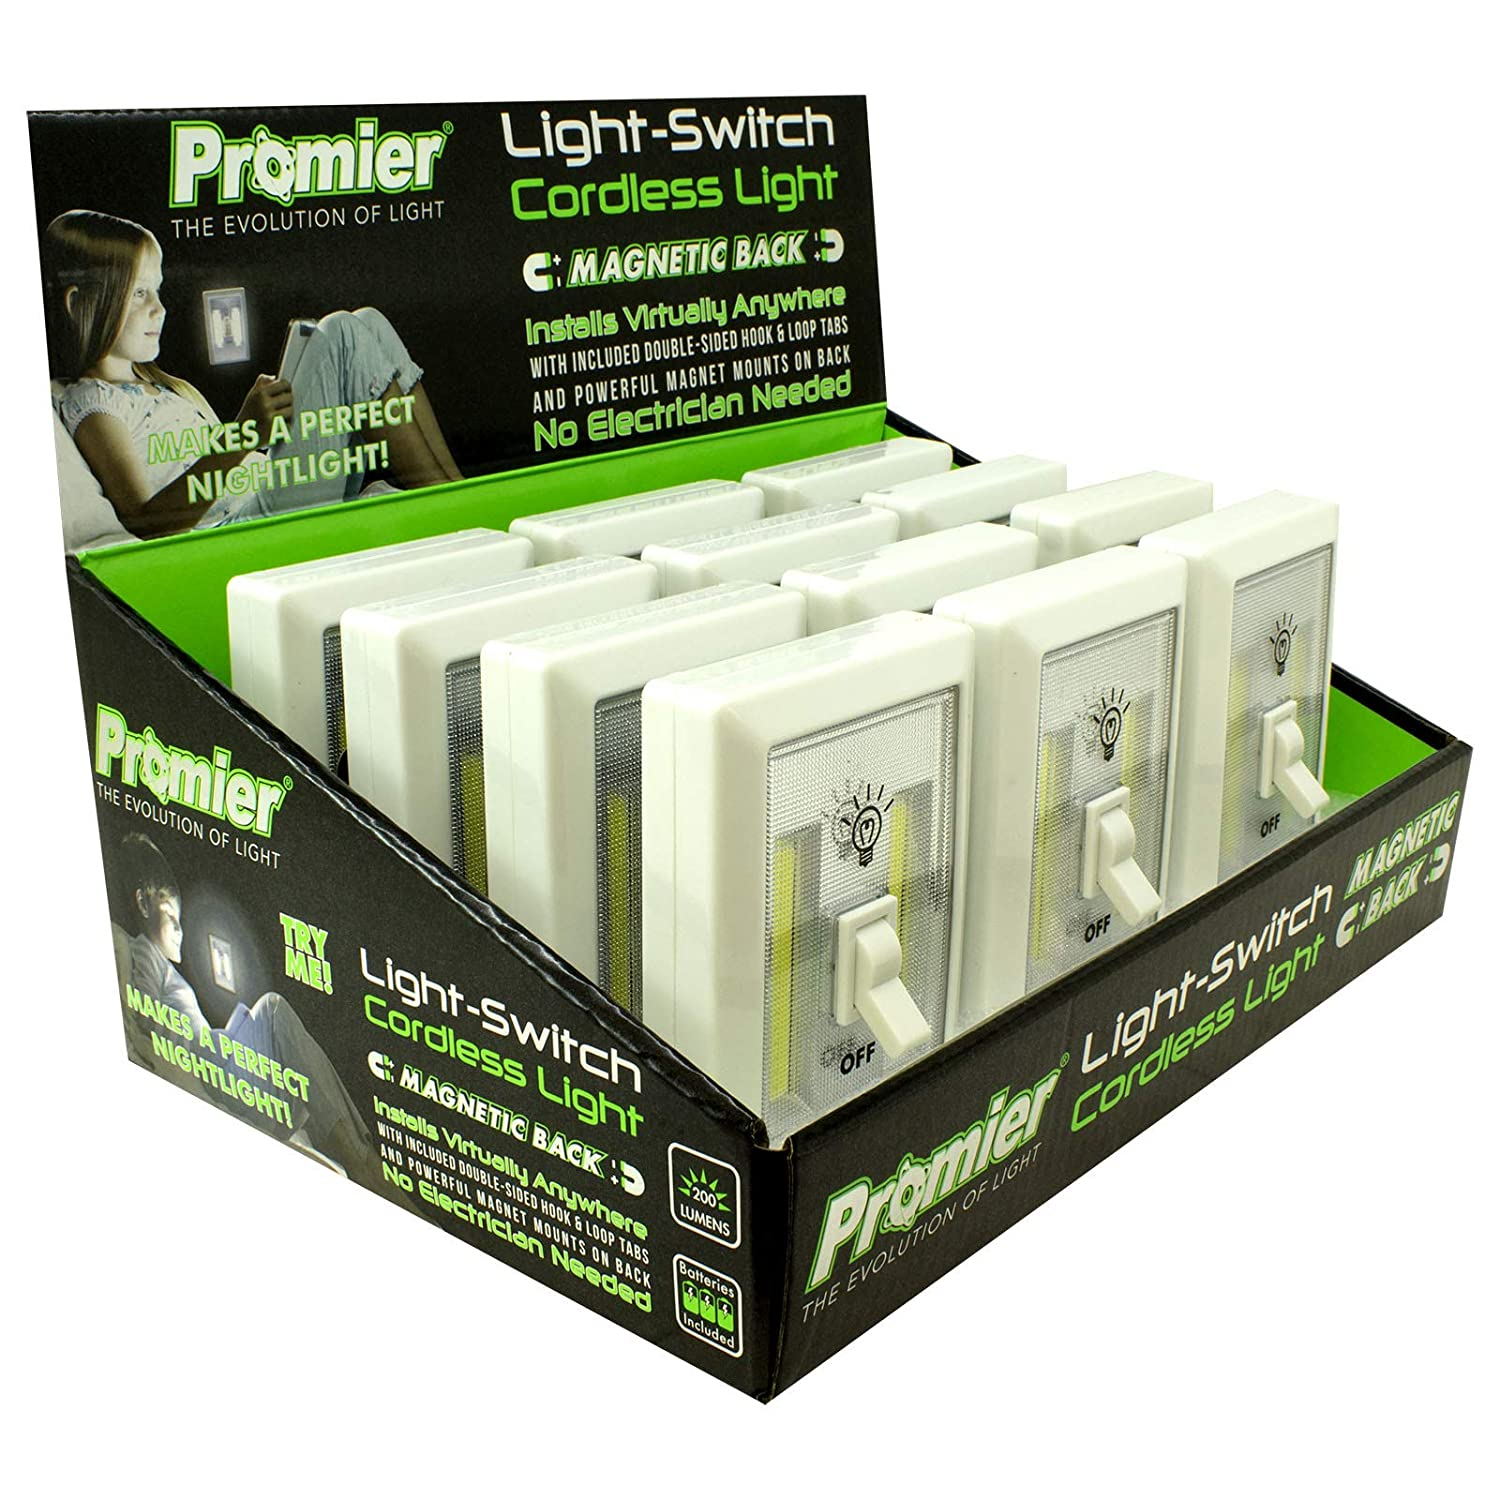 Promier Light Switch - Battery Operated, Cordless, Wireless Light - Super Bright COB LED Technology for Baby Nursery, Dark Hallways, Bedrooms, Closets, RV